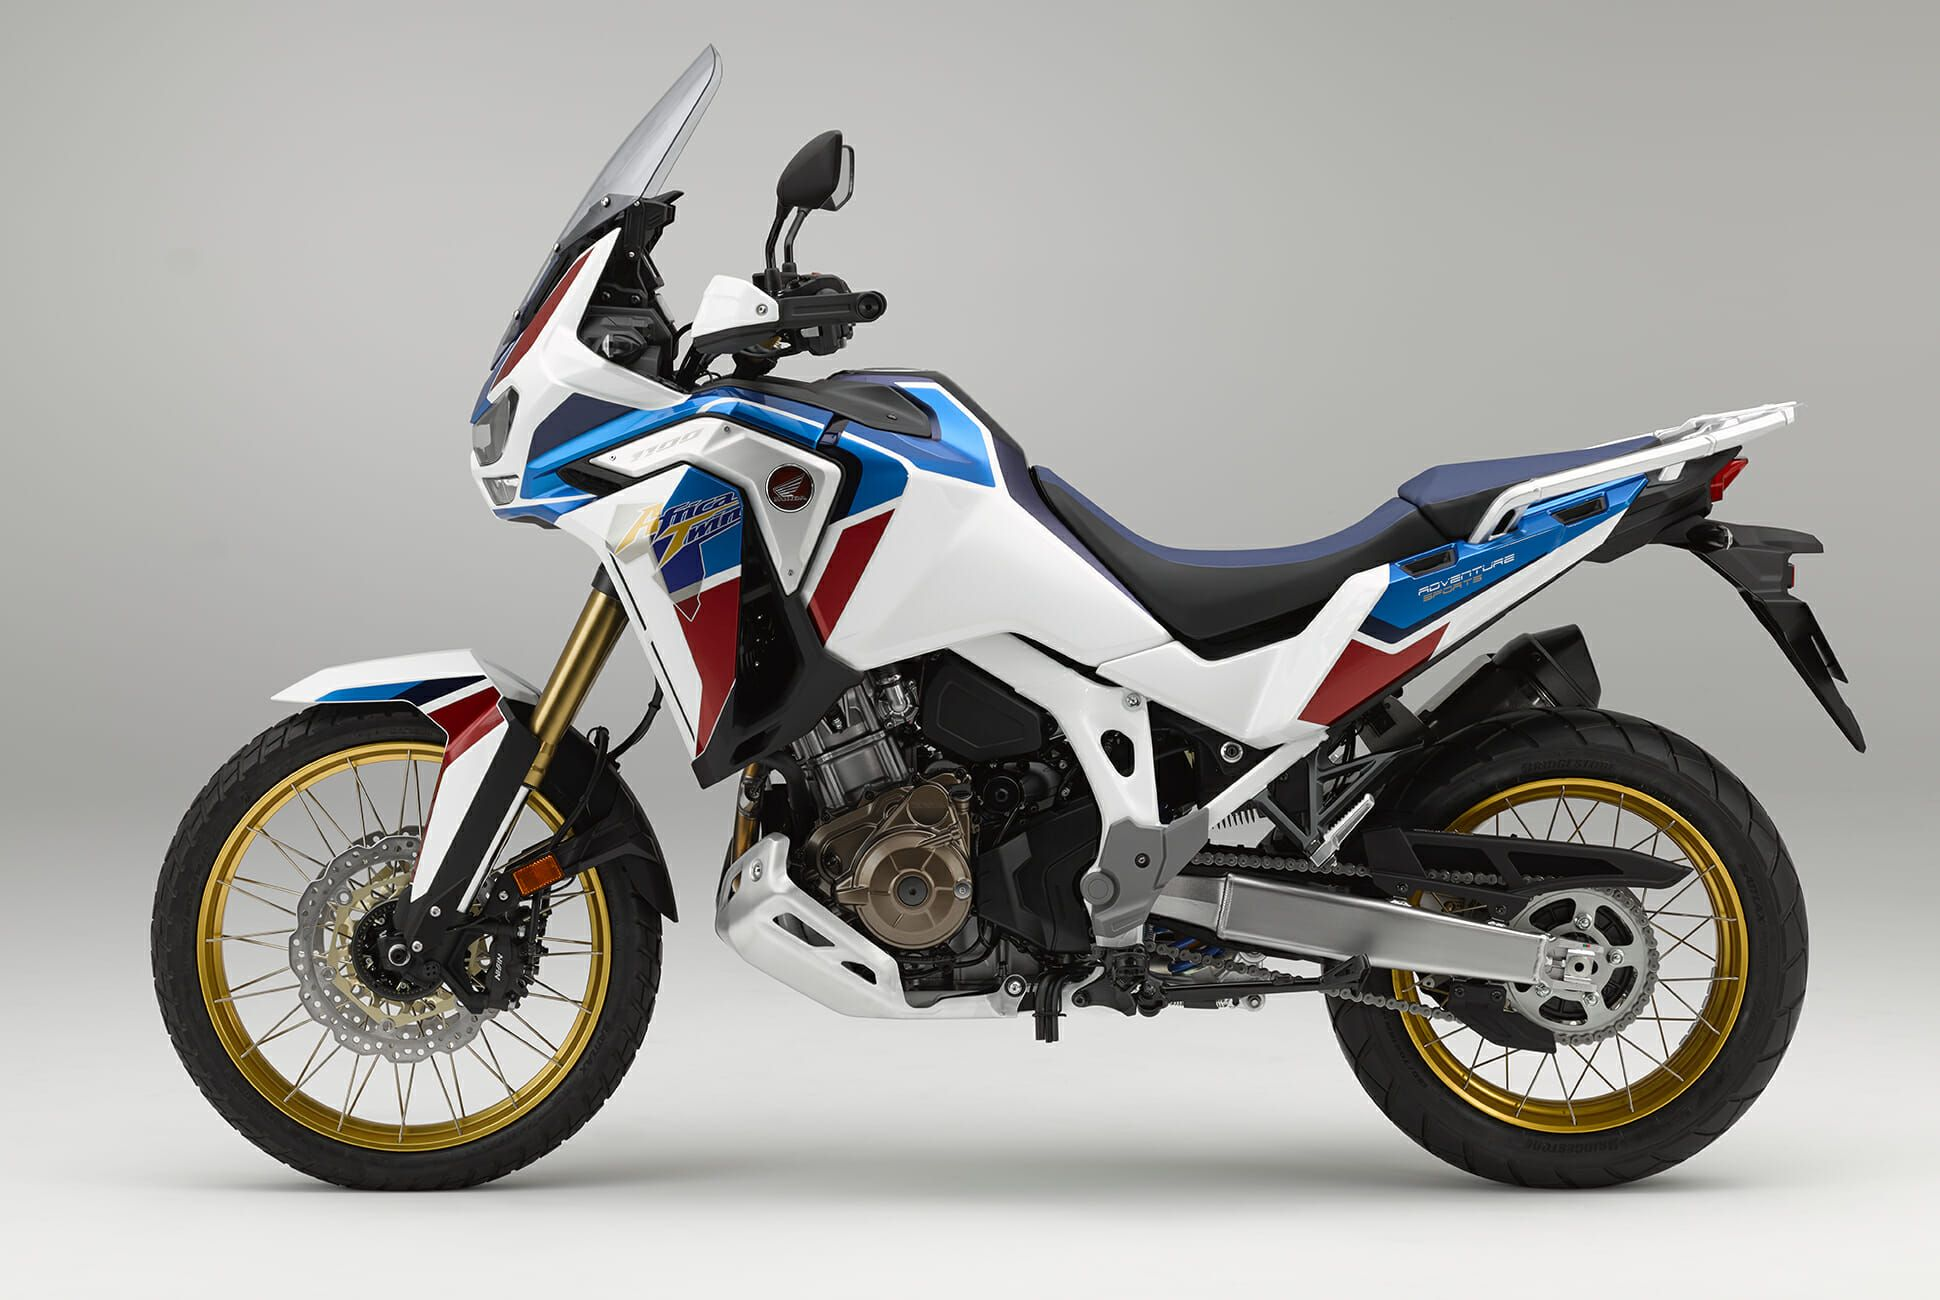 Honda S New Africa Twin Marks A New Generation Of A Legendary Motorcycle In 2020 Honda Africa Twin Honda Honda S